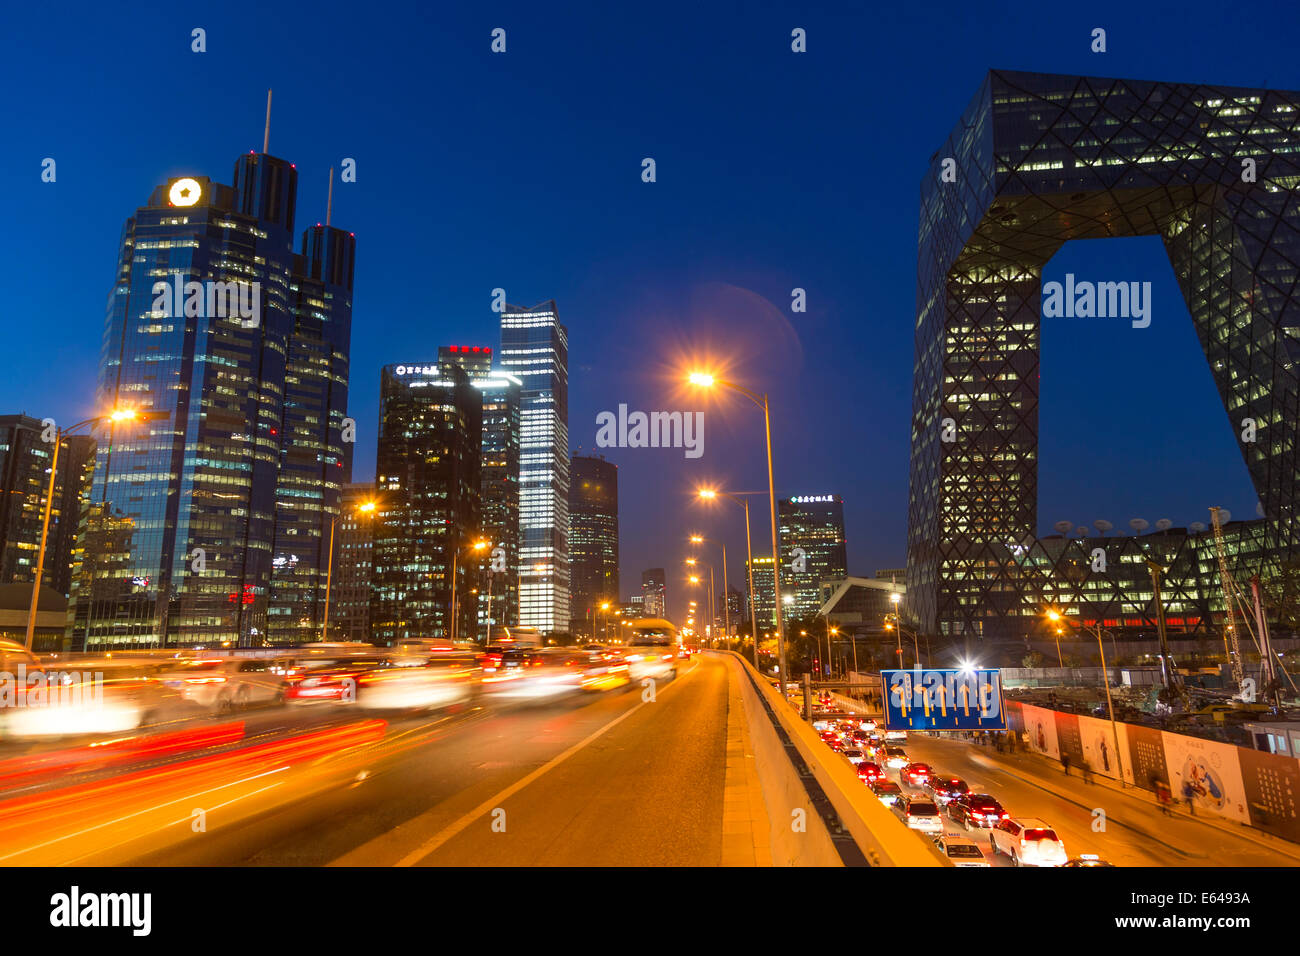 Central Business District & CCTV building at dusk, Beijing, China - Stock Image